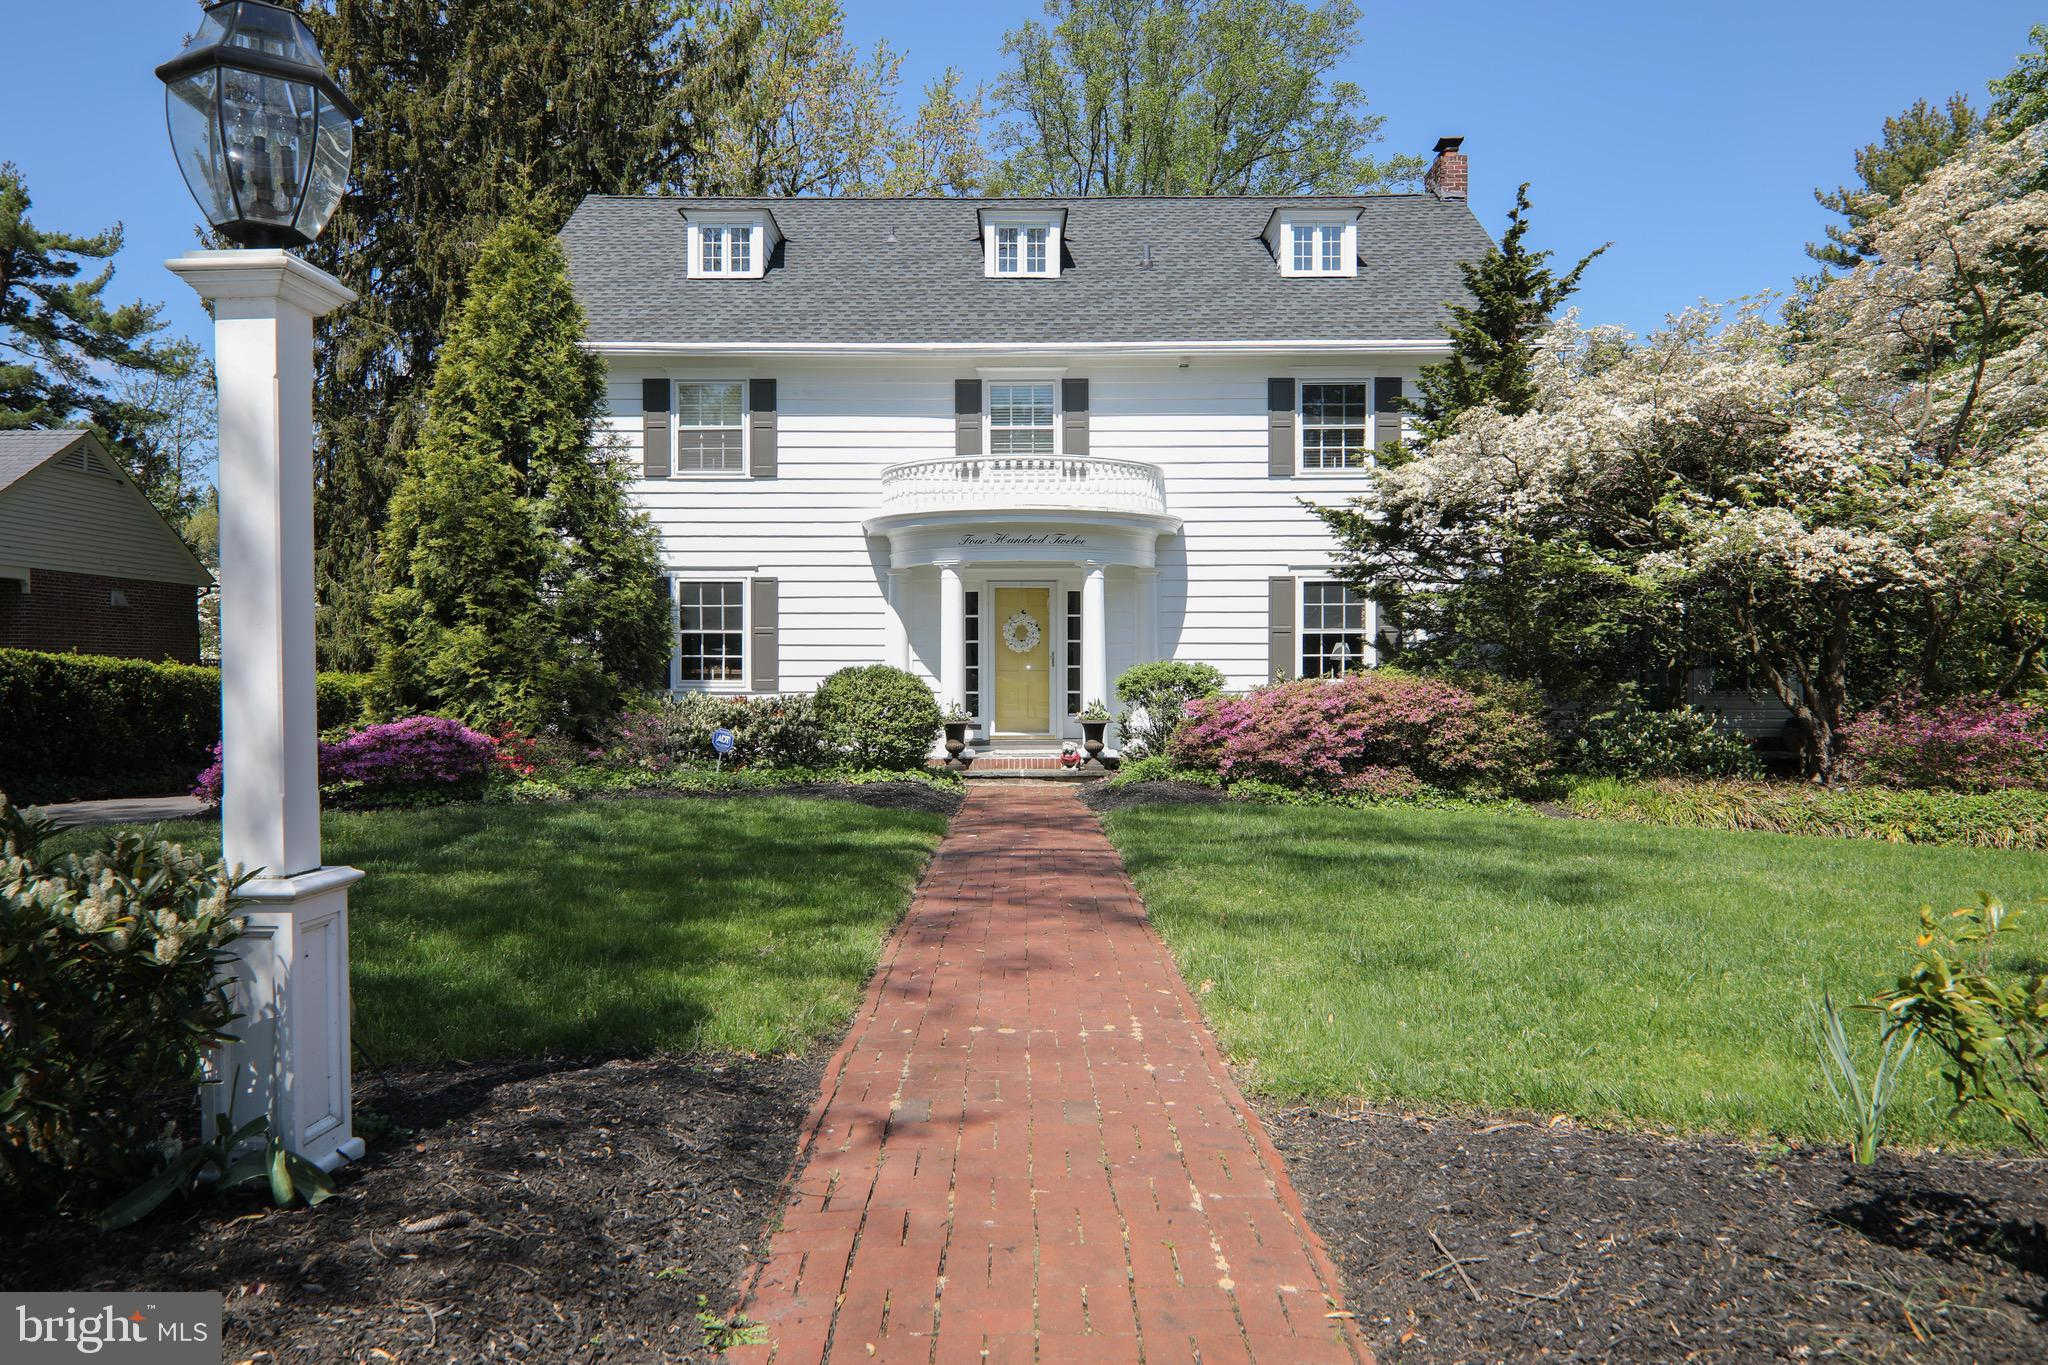 412 Chews Landing Road, Haddonfield, NJ 08033 now has a new price of $997,000!